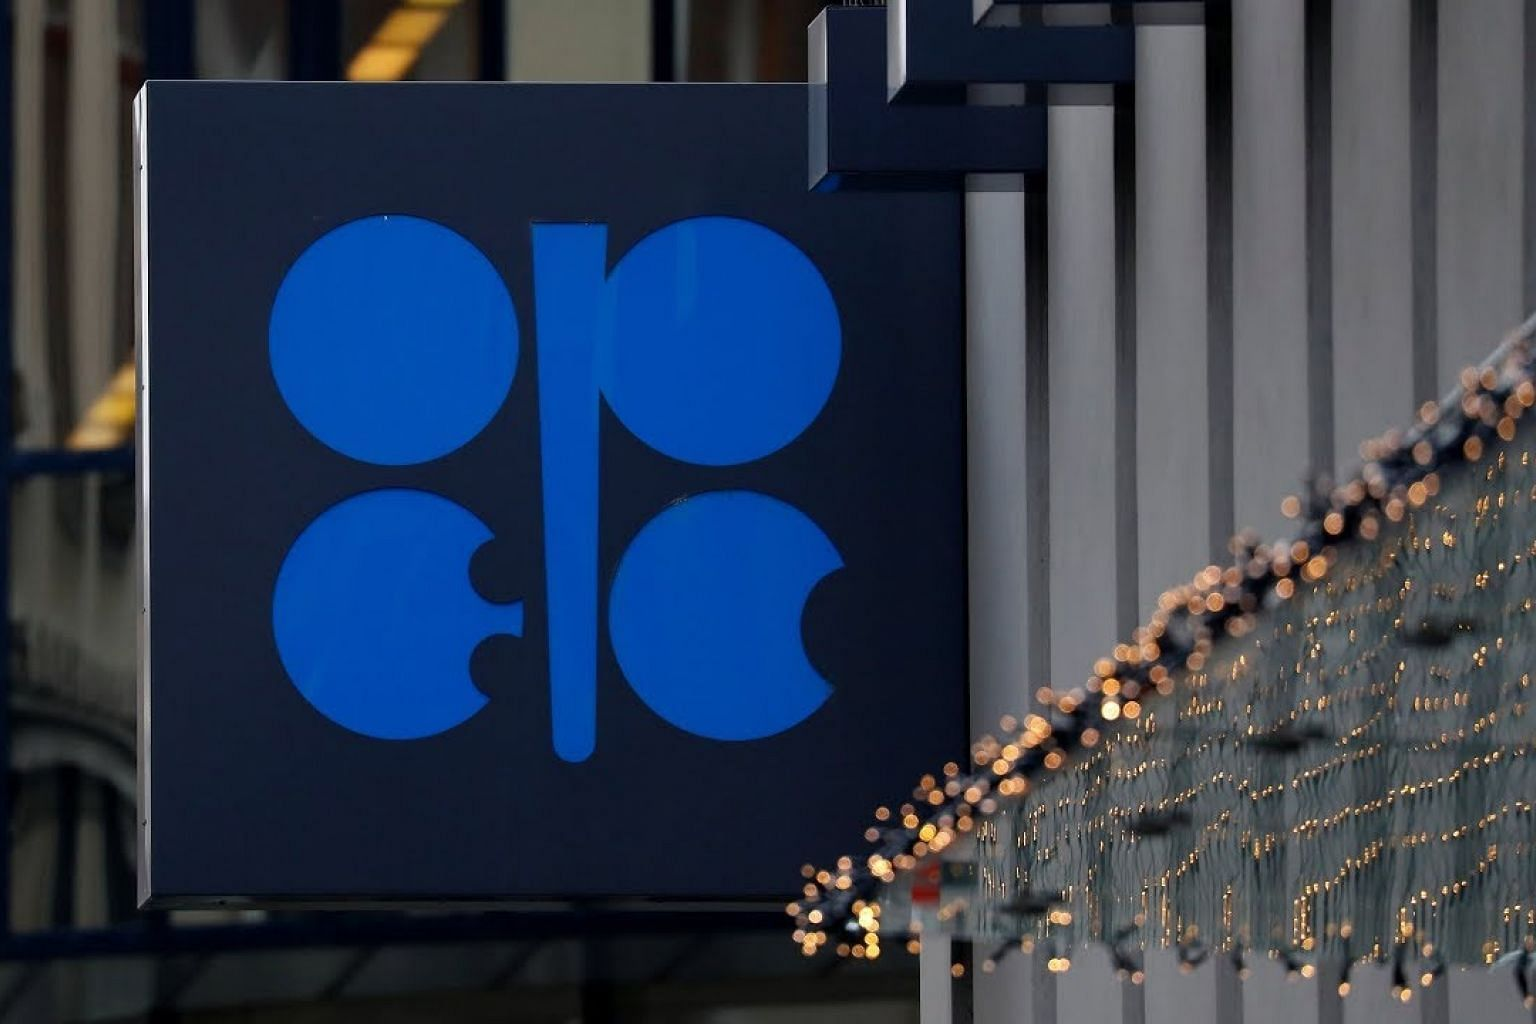 Oil drops even as Opec curbs output